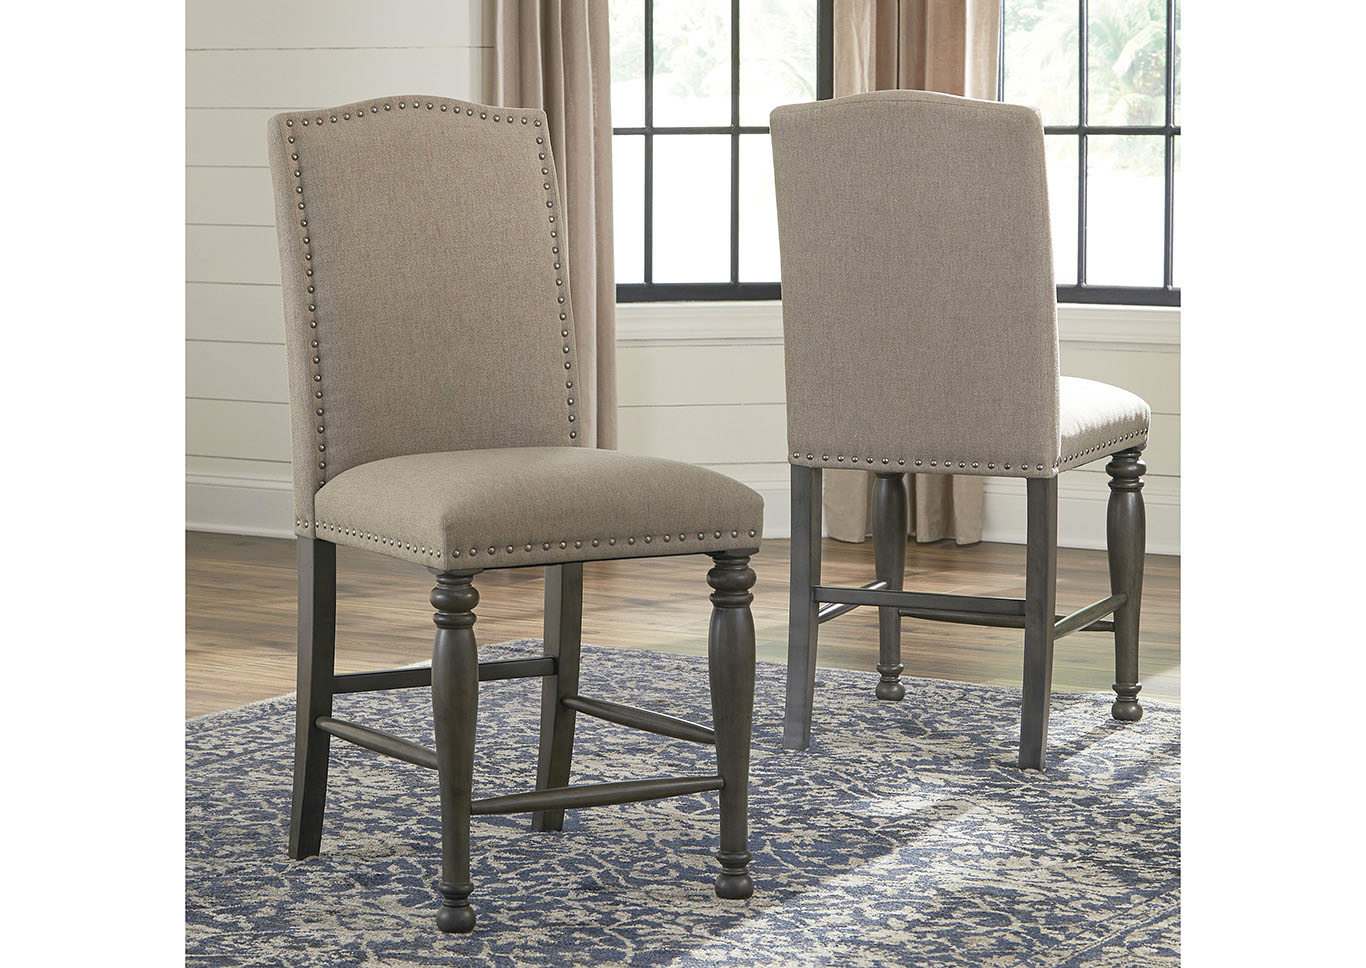 Audberry Tan Upholstered Bar Stool (Set of 2),Signature Design By Ashley